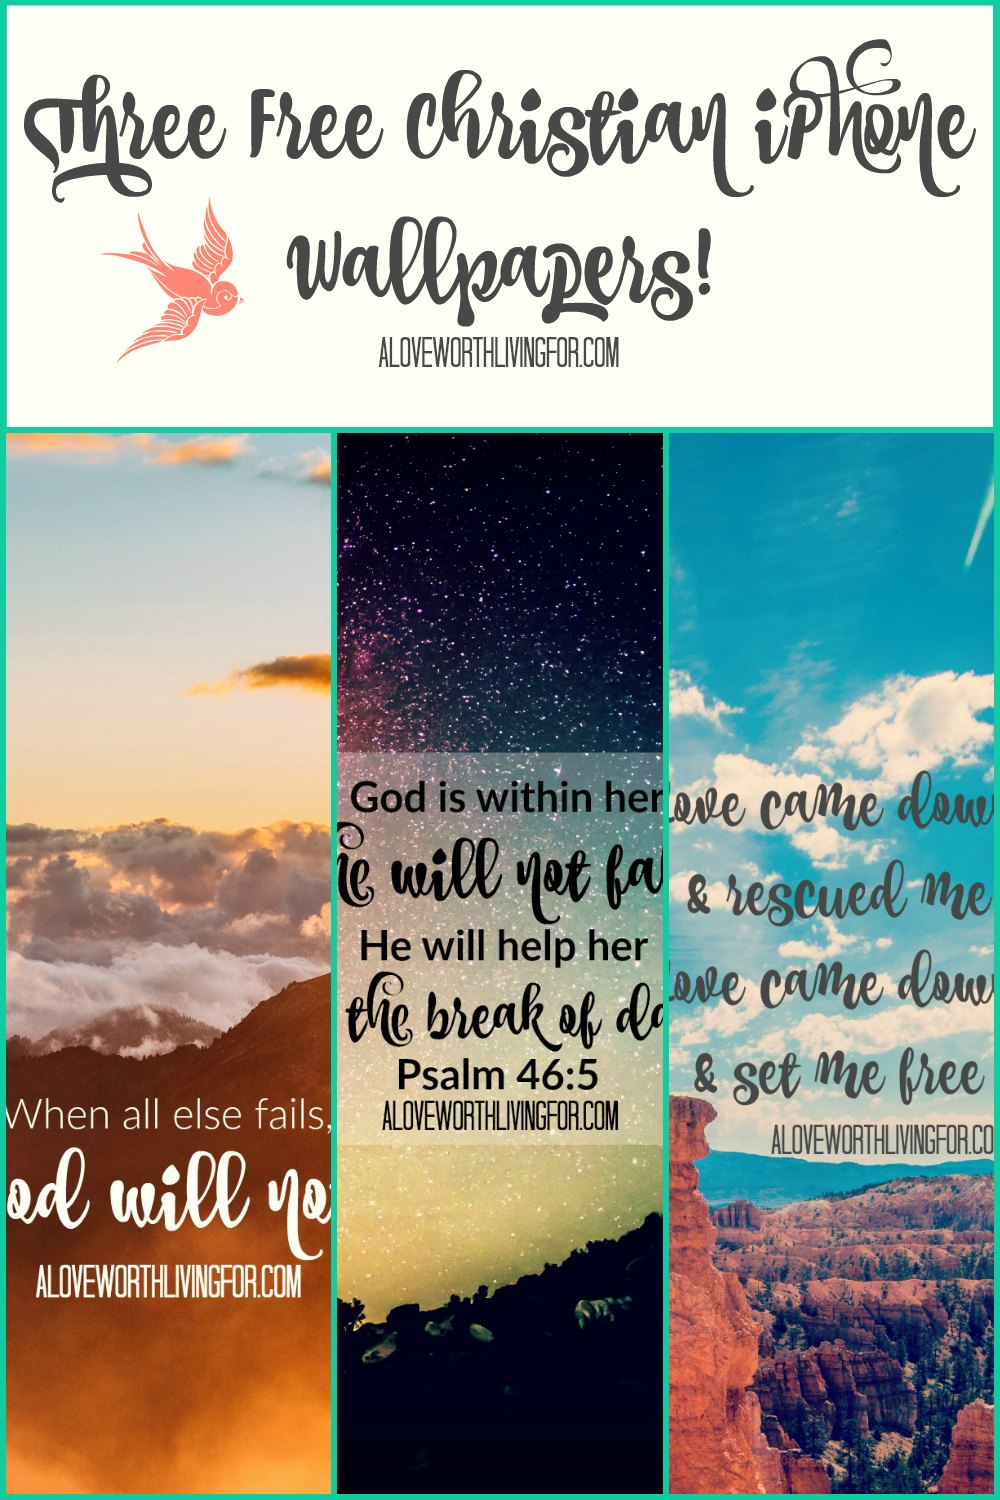 We are on our phones all day! Here are some free Christian iPhone wallpapers that I made for you guys! I hope these encourage you today and every time you open your phone.